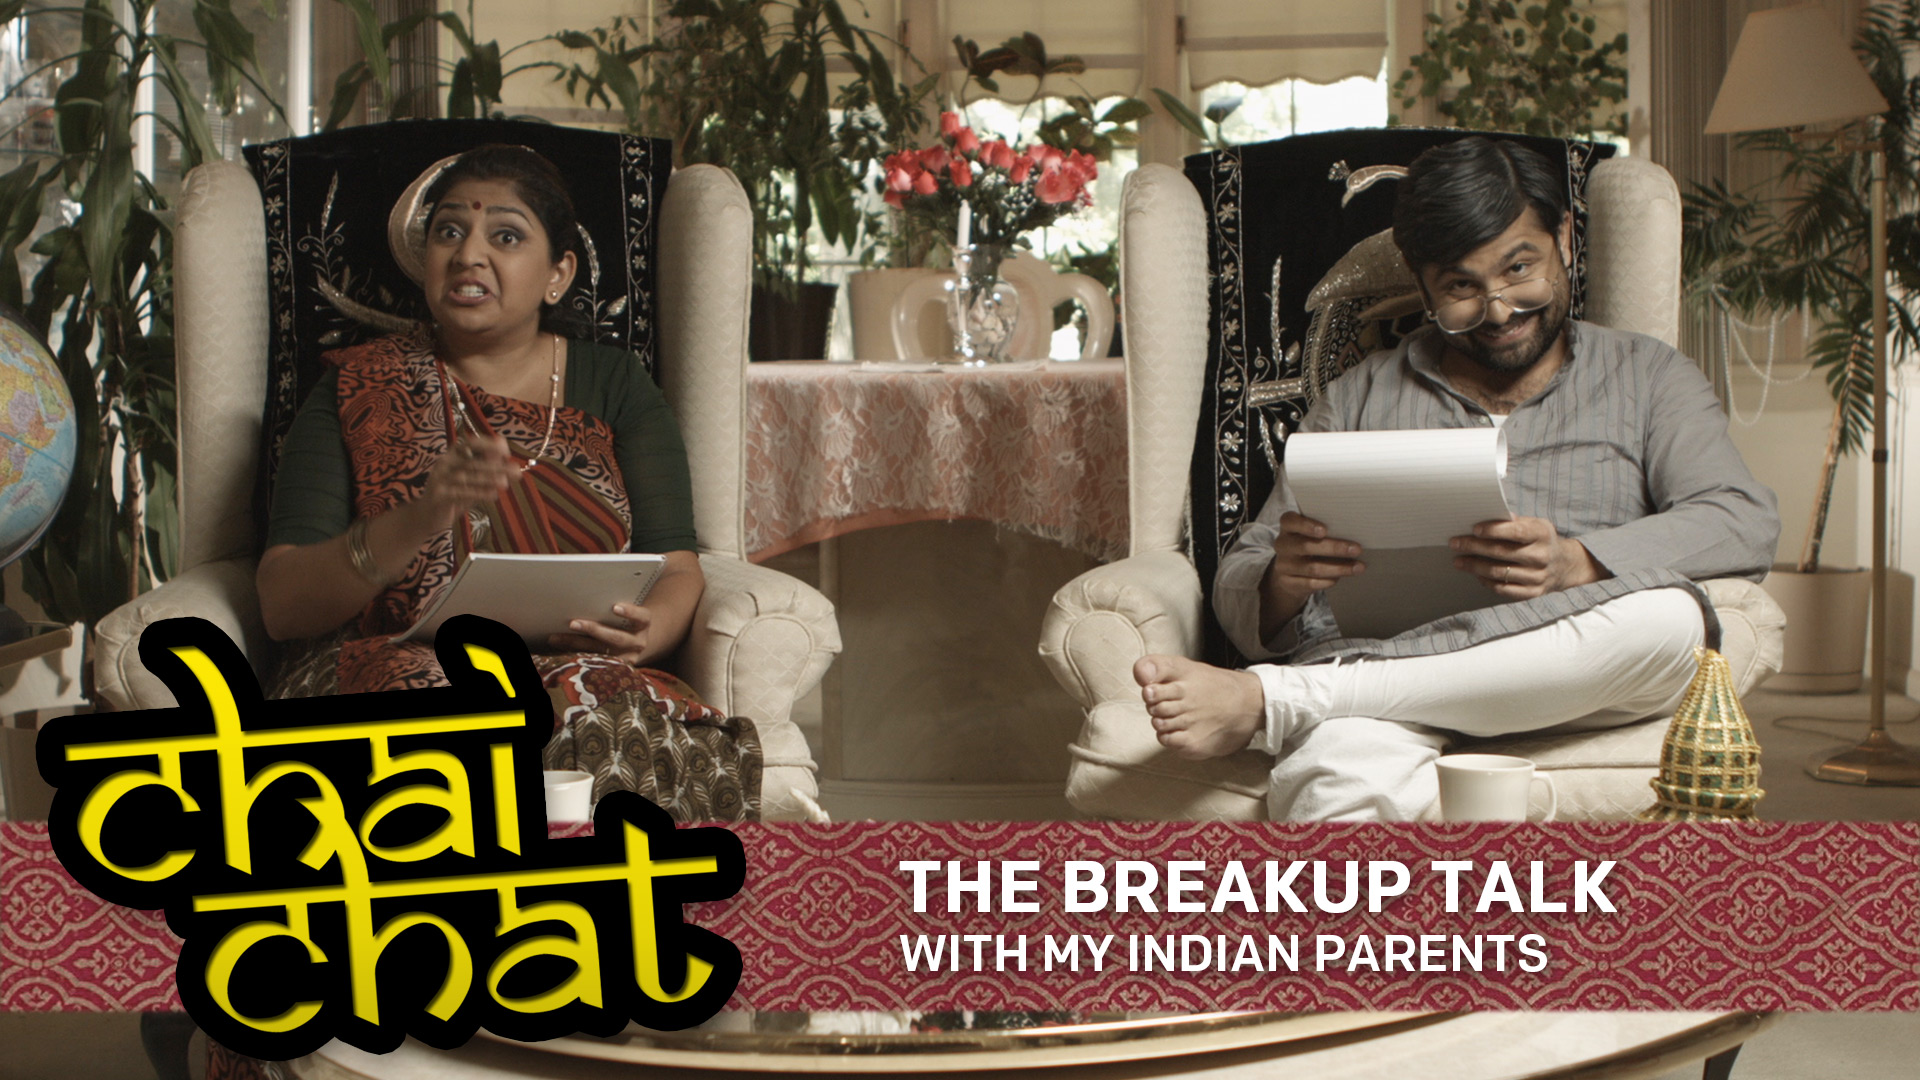 Chai Chat: The Break Up Talk - With My Indian Parents